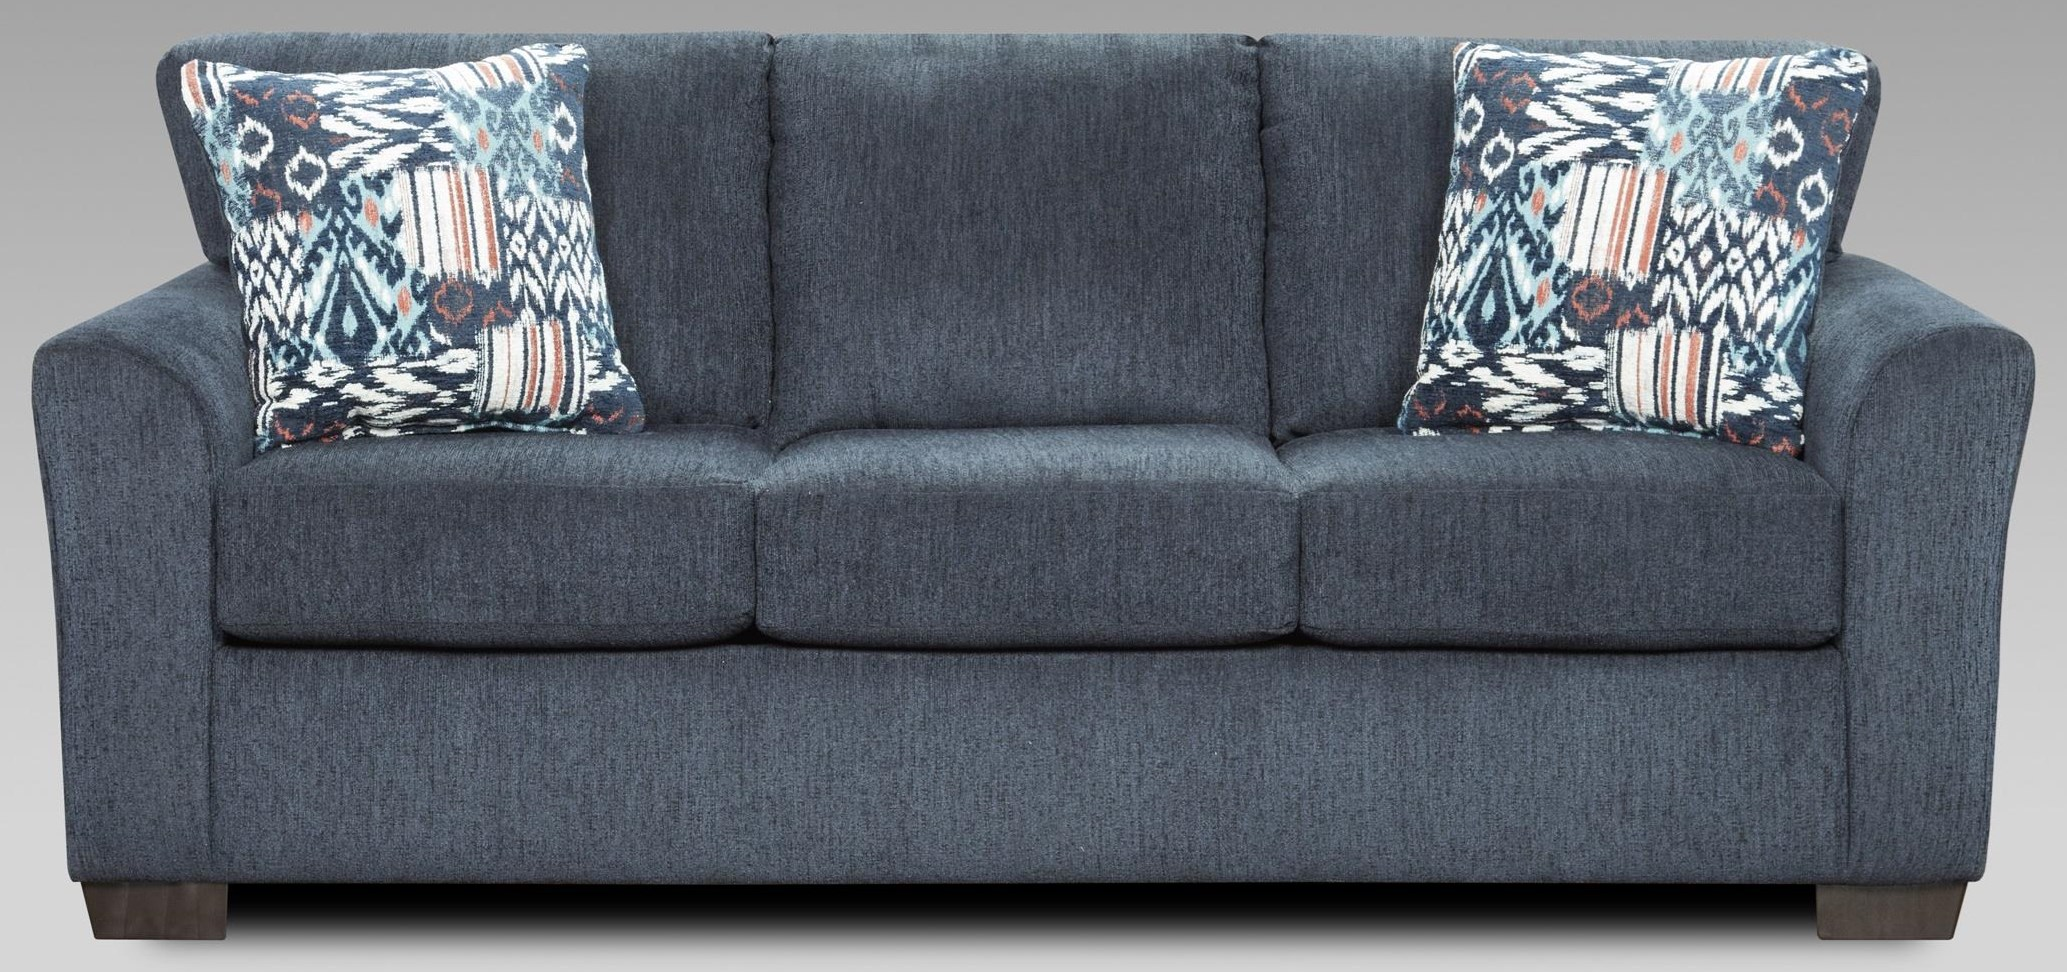 3333 3333 Navy Sleeper Sofa by Affordable Furniture at Furniture Fair - North Carolina